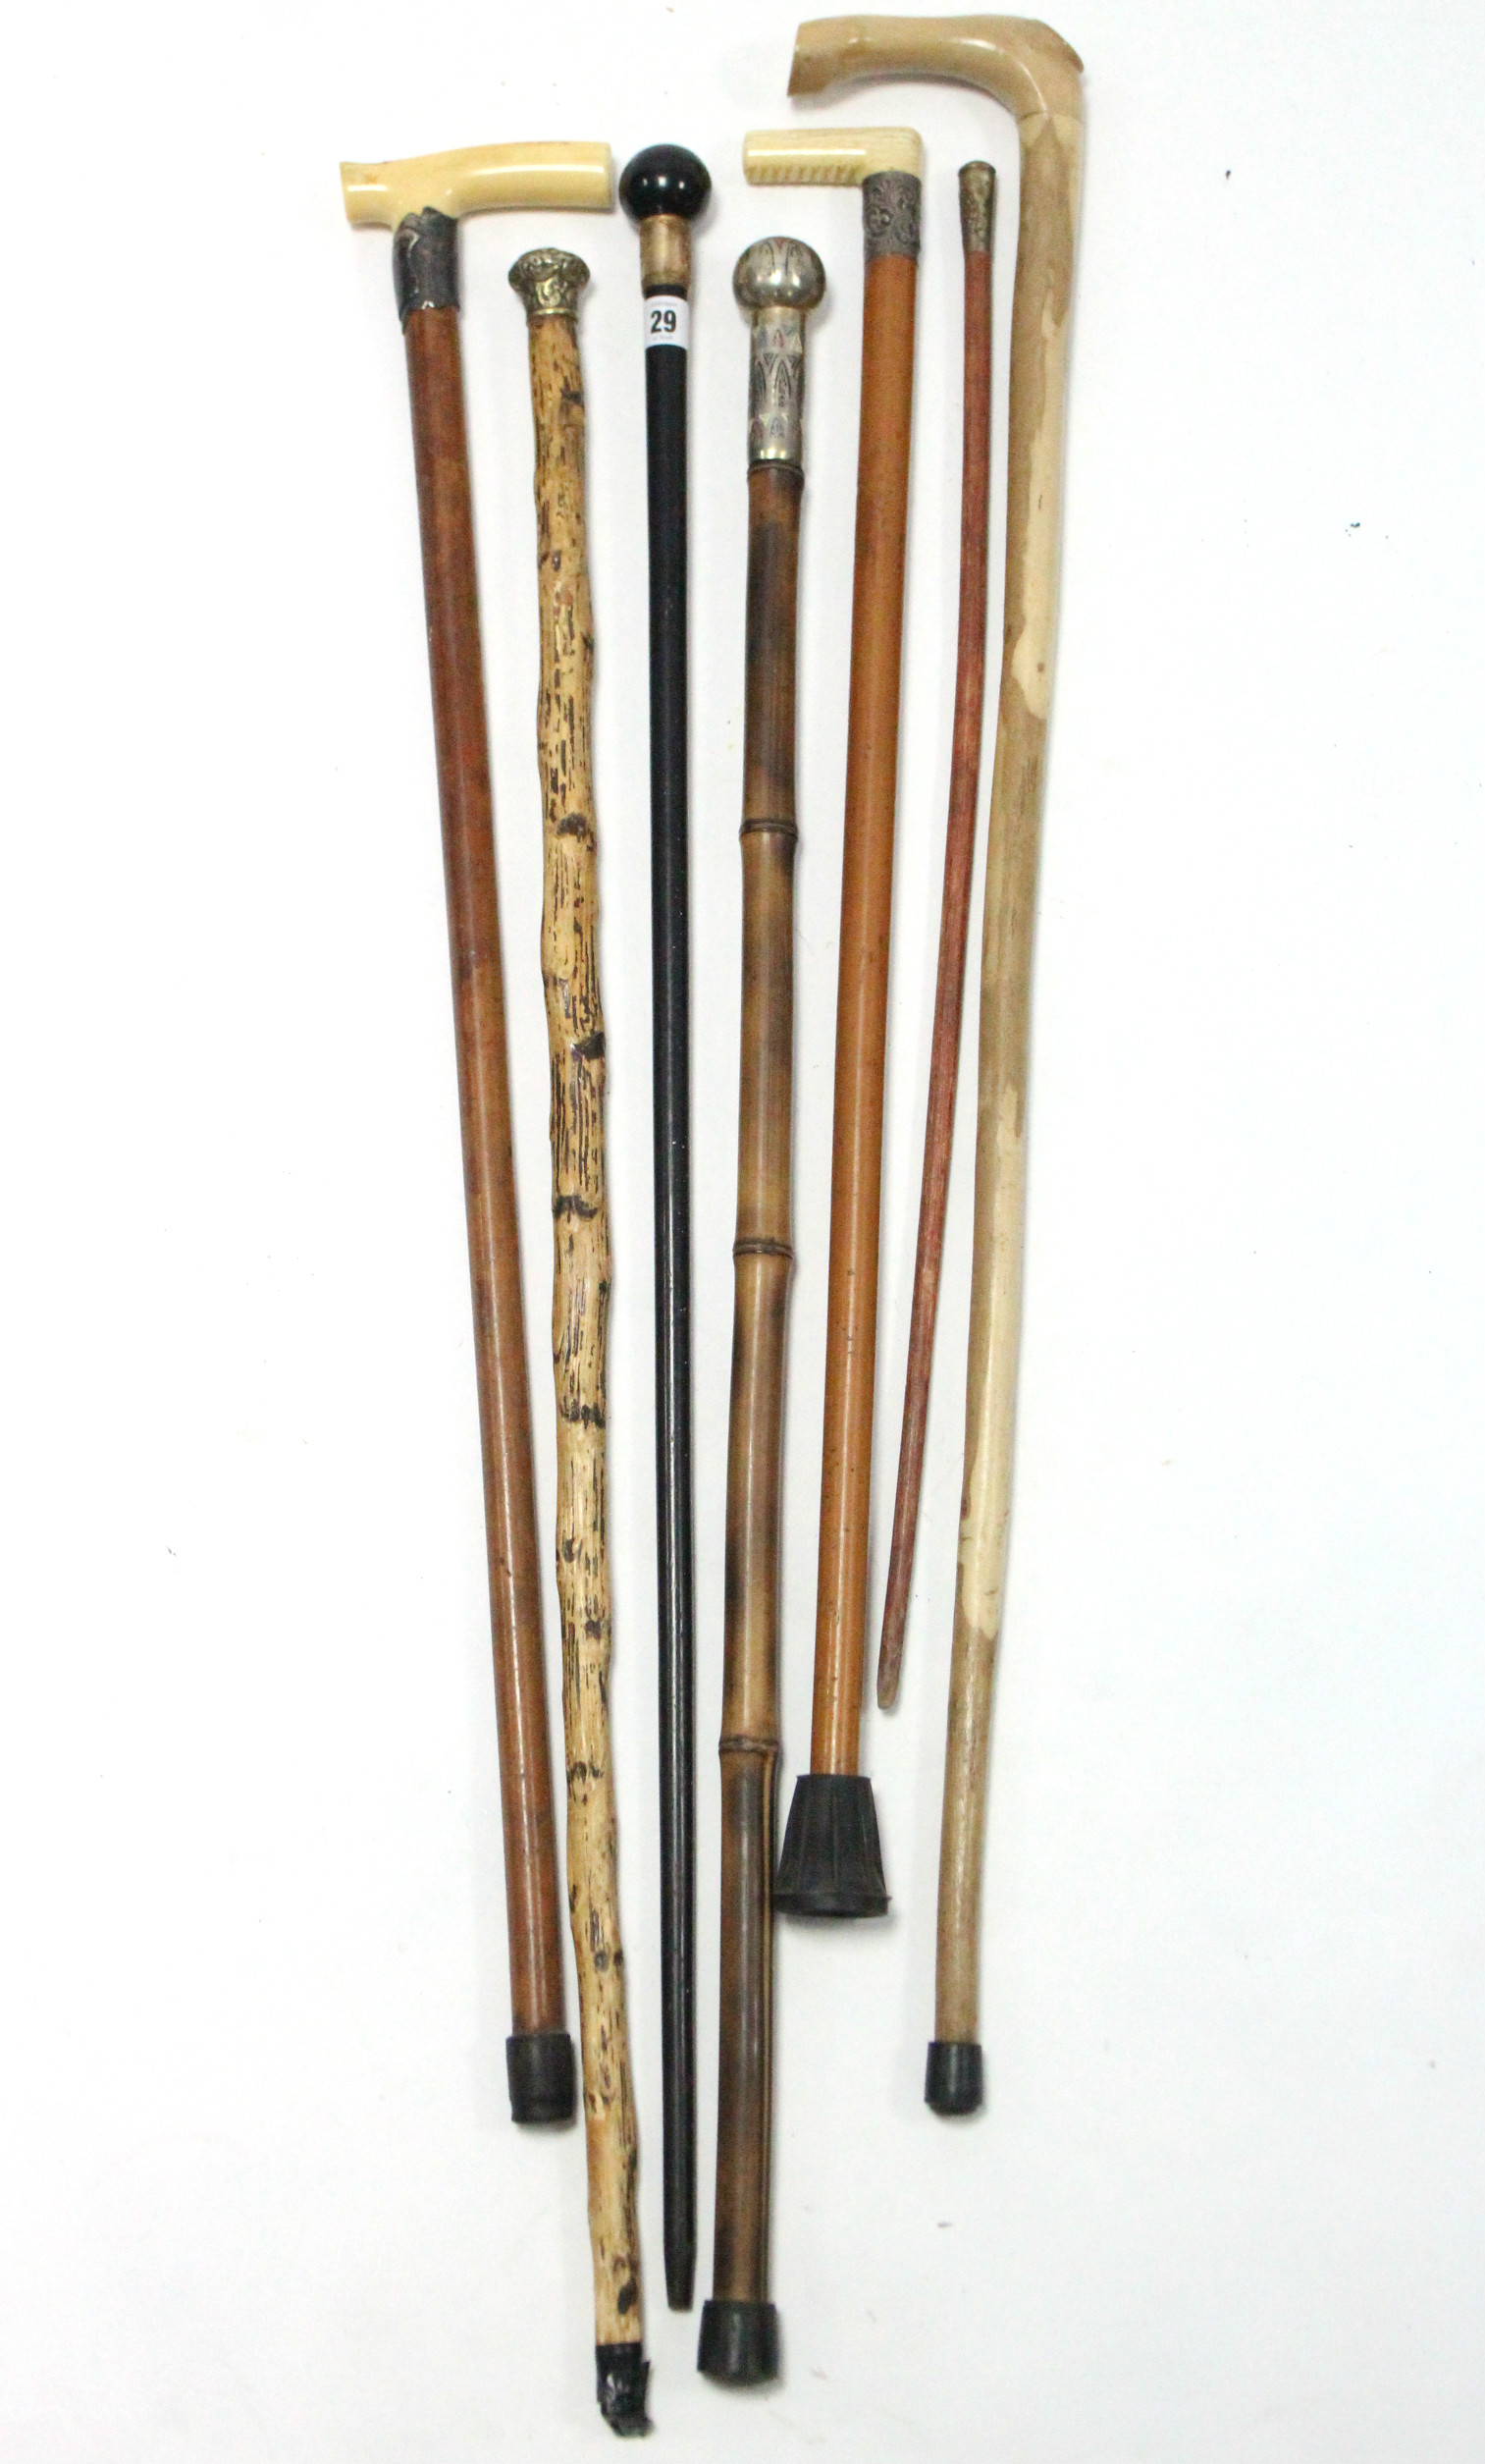 Lot 29 - An Edwardian ebonised gent's walking cane with 18ct. gold plated mount; together with five other